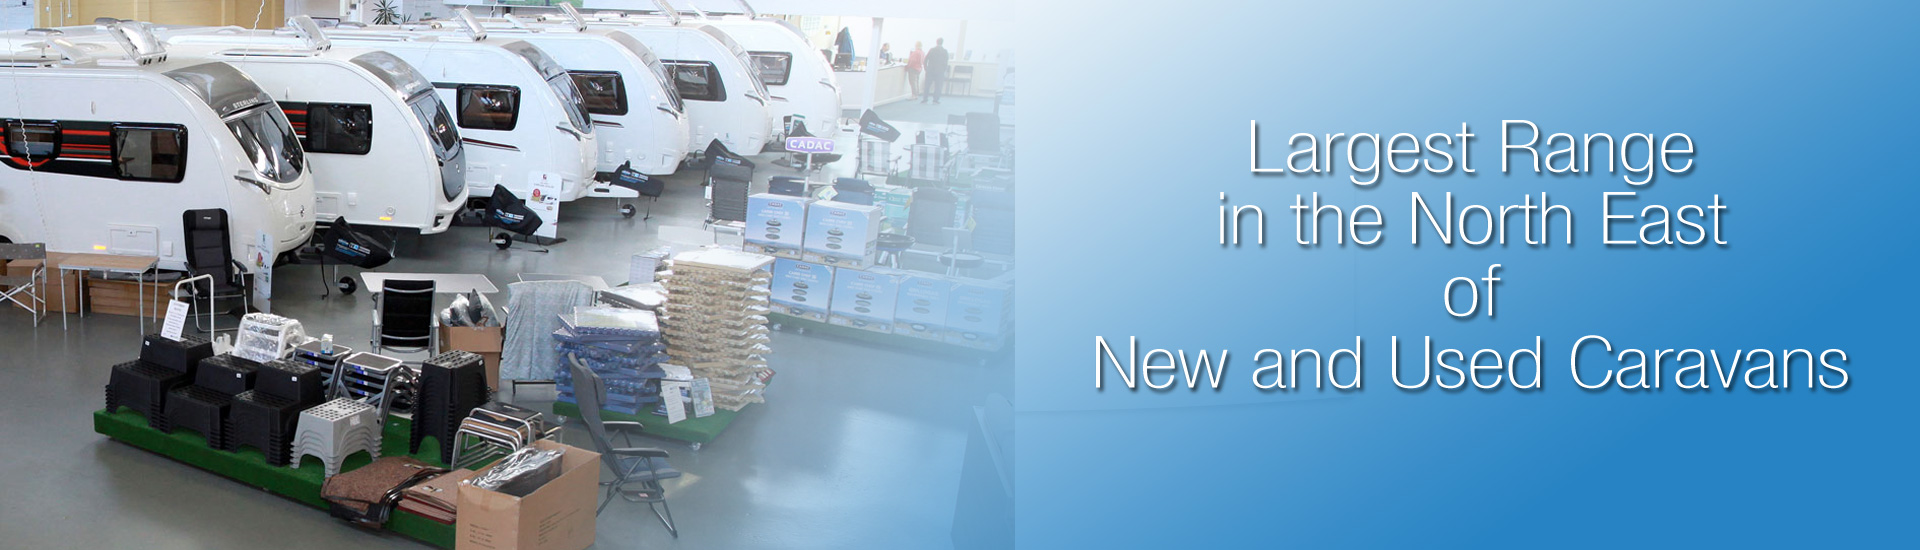 Largest range in the North east of New and Used Caravans